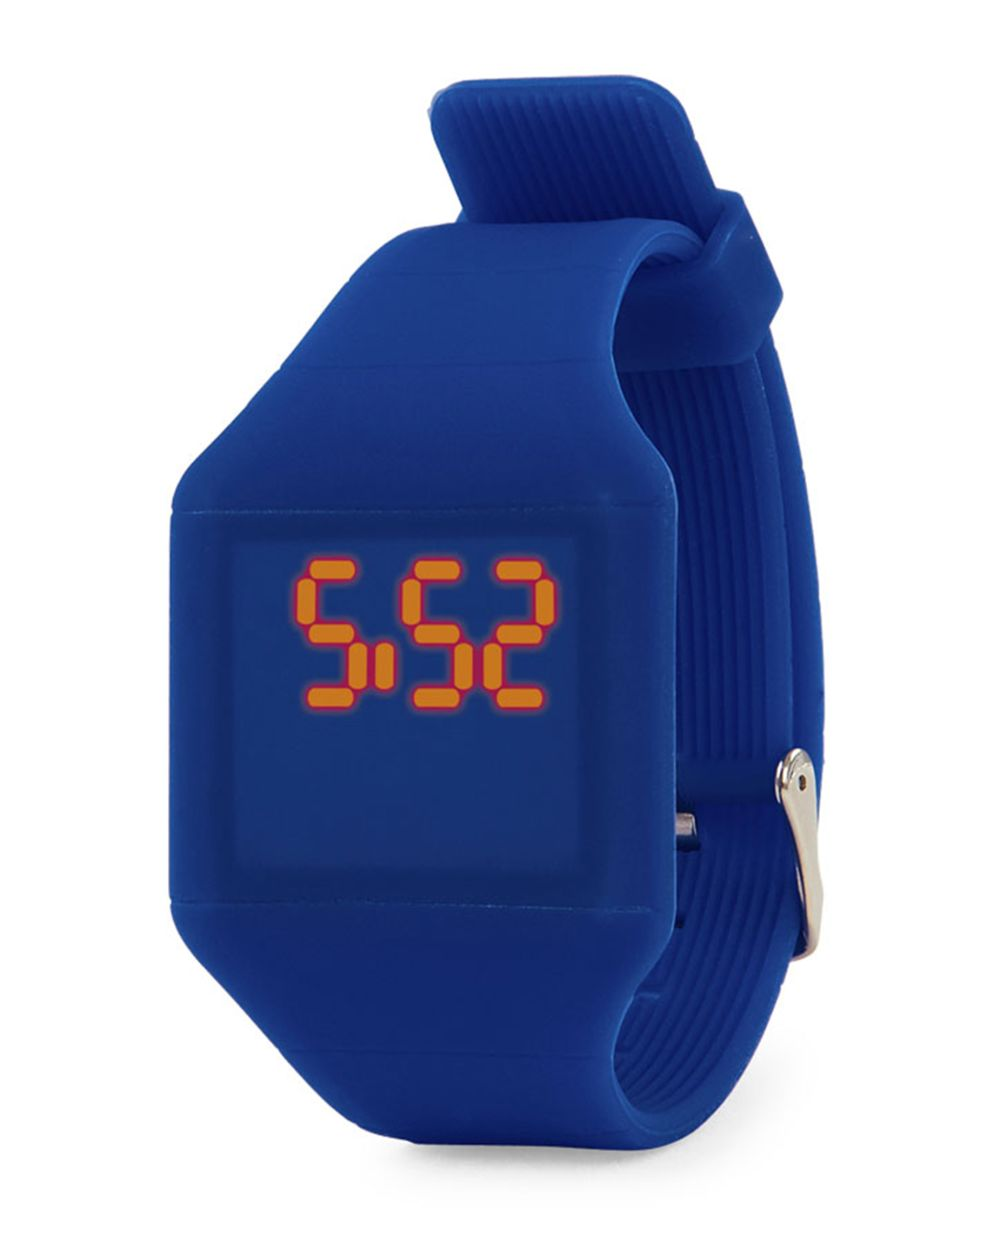 Boys Digital Watch